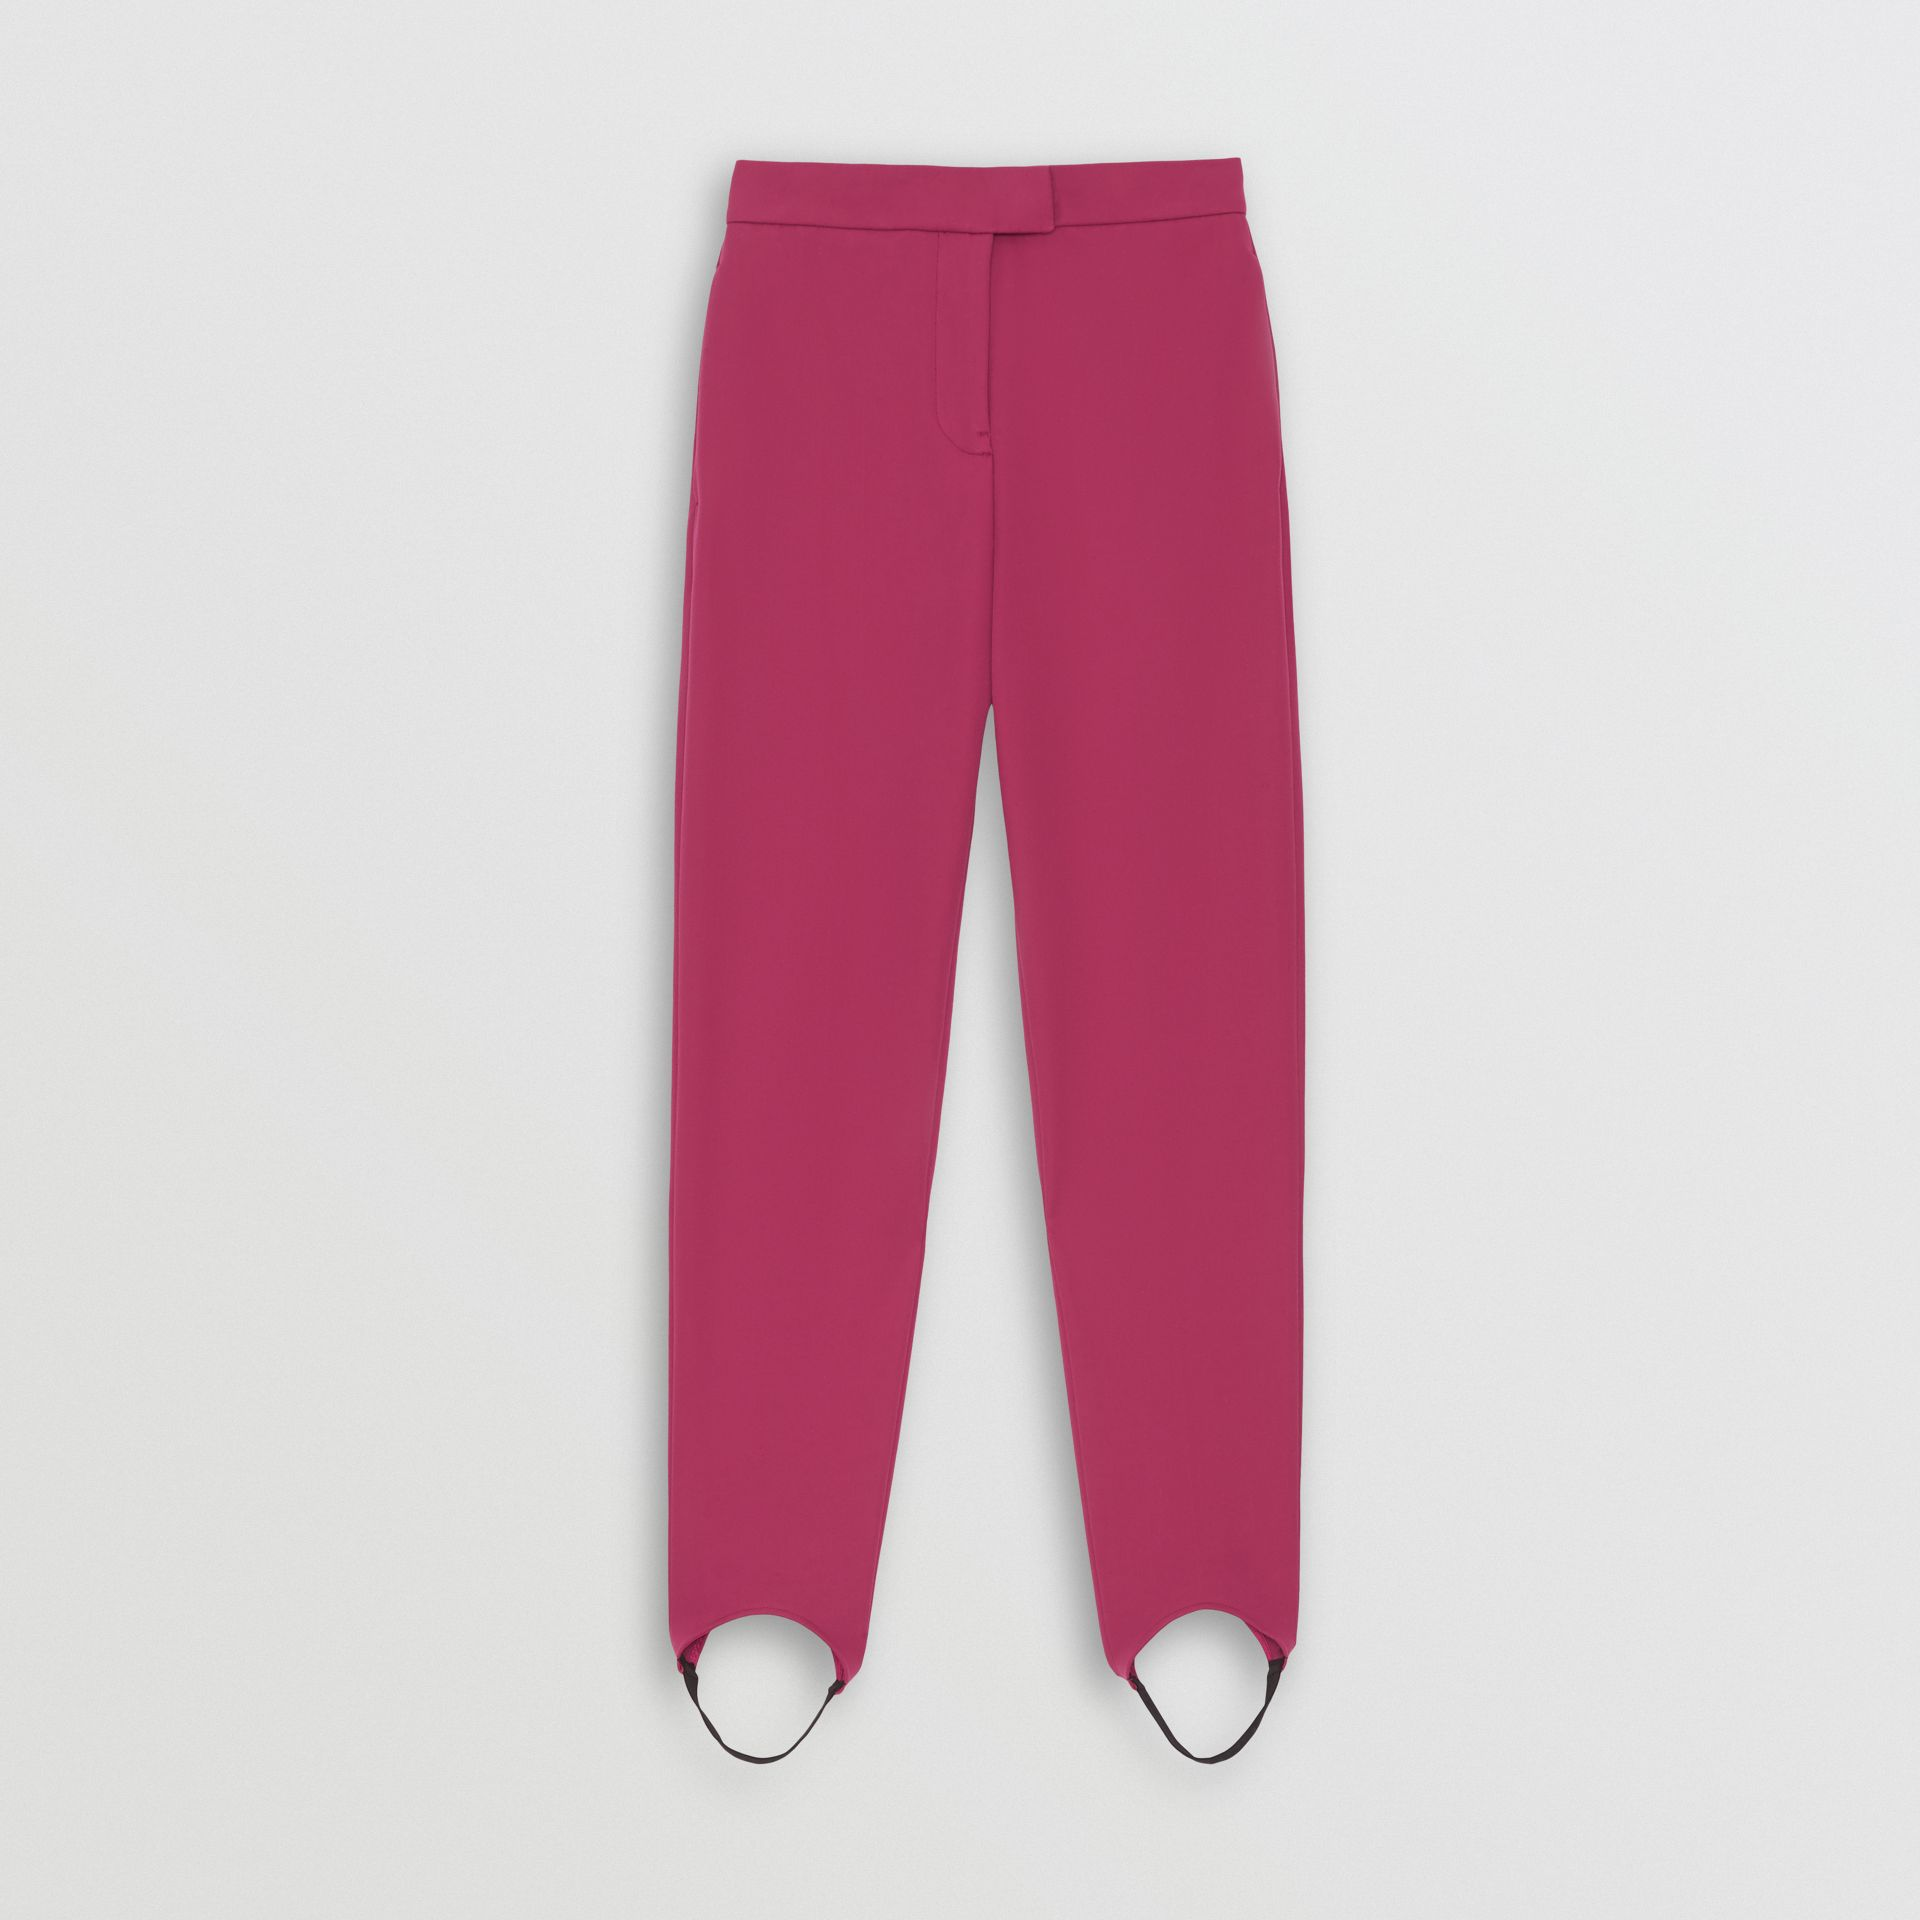 Cotton Blend Tailored Jodhpurs in Plum Pink - Women | Burberry United Kingdom - gallery image 3